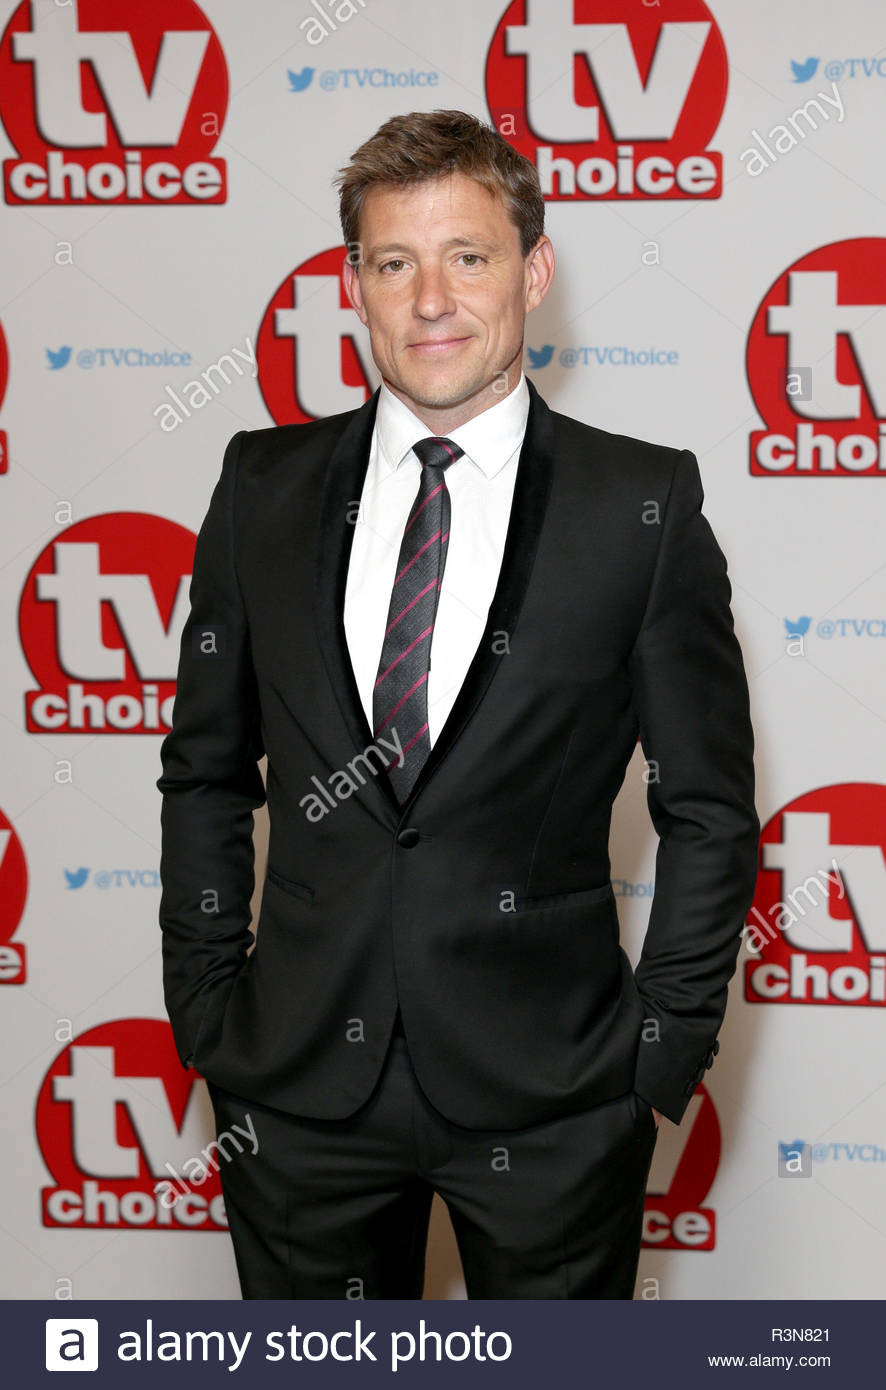 File photo dated 05/09/16 of Ben Shephard, who had a tricky encounter with a millipede when it urinated on his hand on live TV. - Stock Image